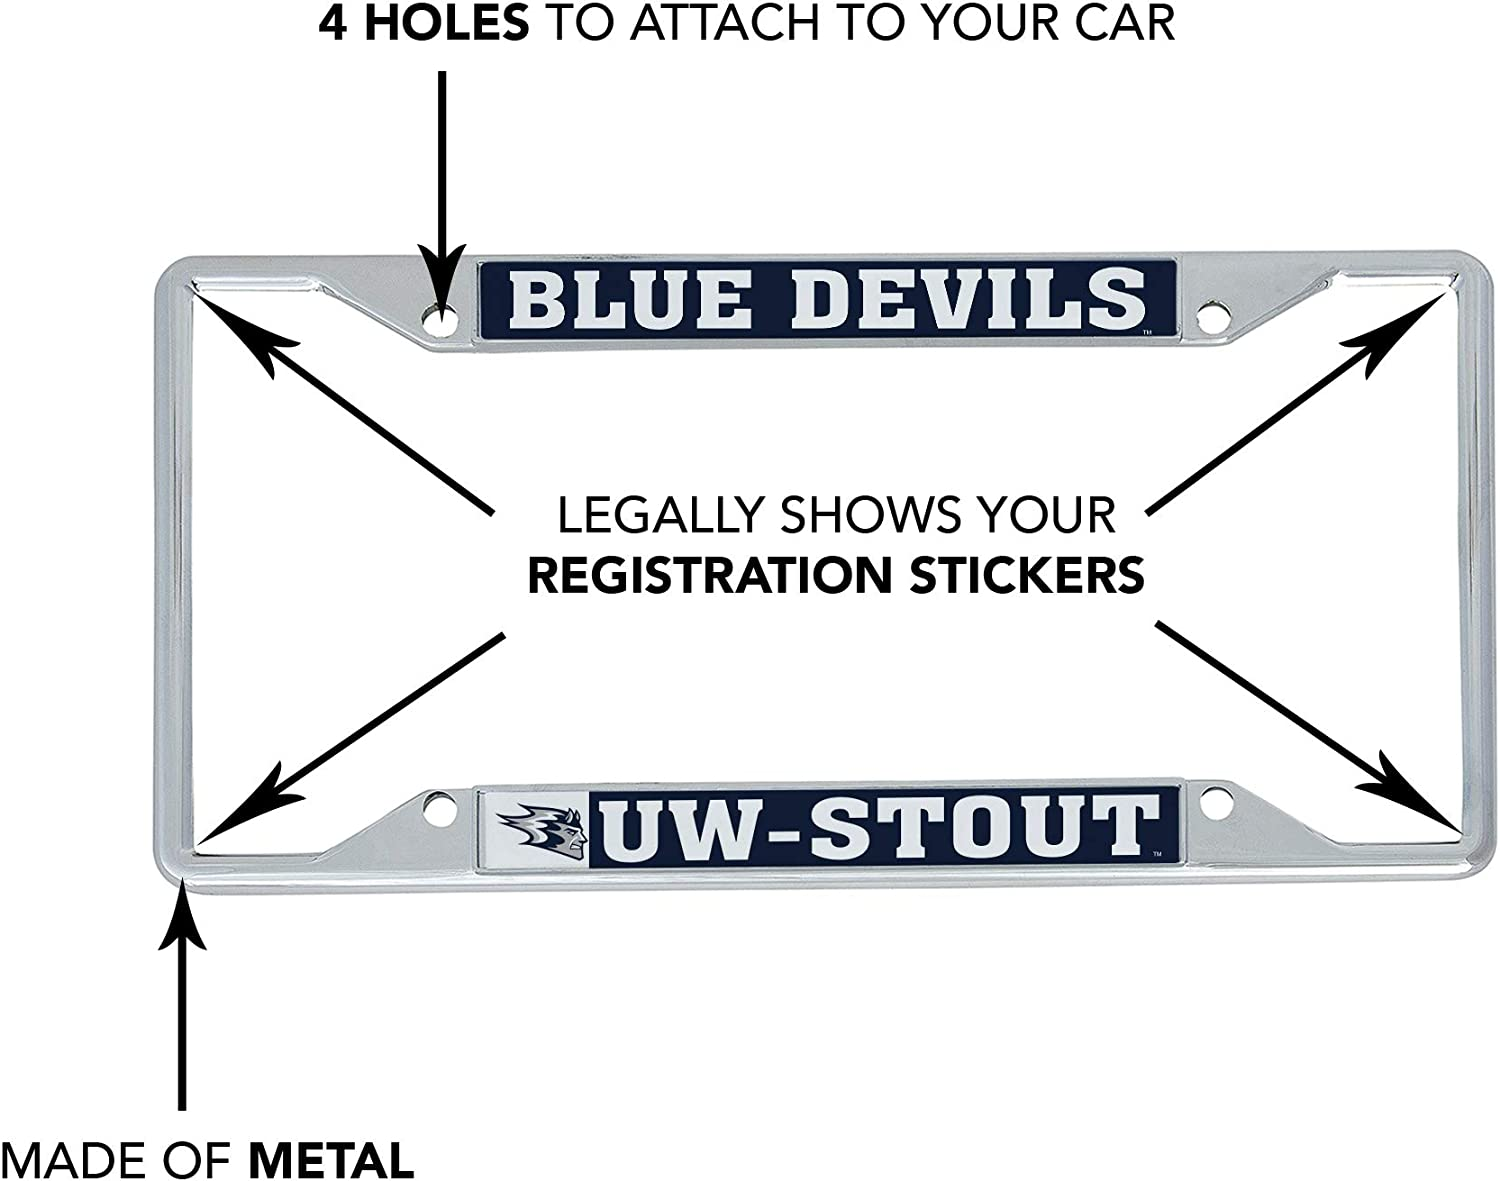 University of Wisconsin Stout Blue Devils NCAA Metal License Plate Frame for Front Back of Car Officially Licensed Mascot